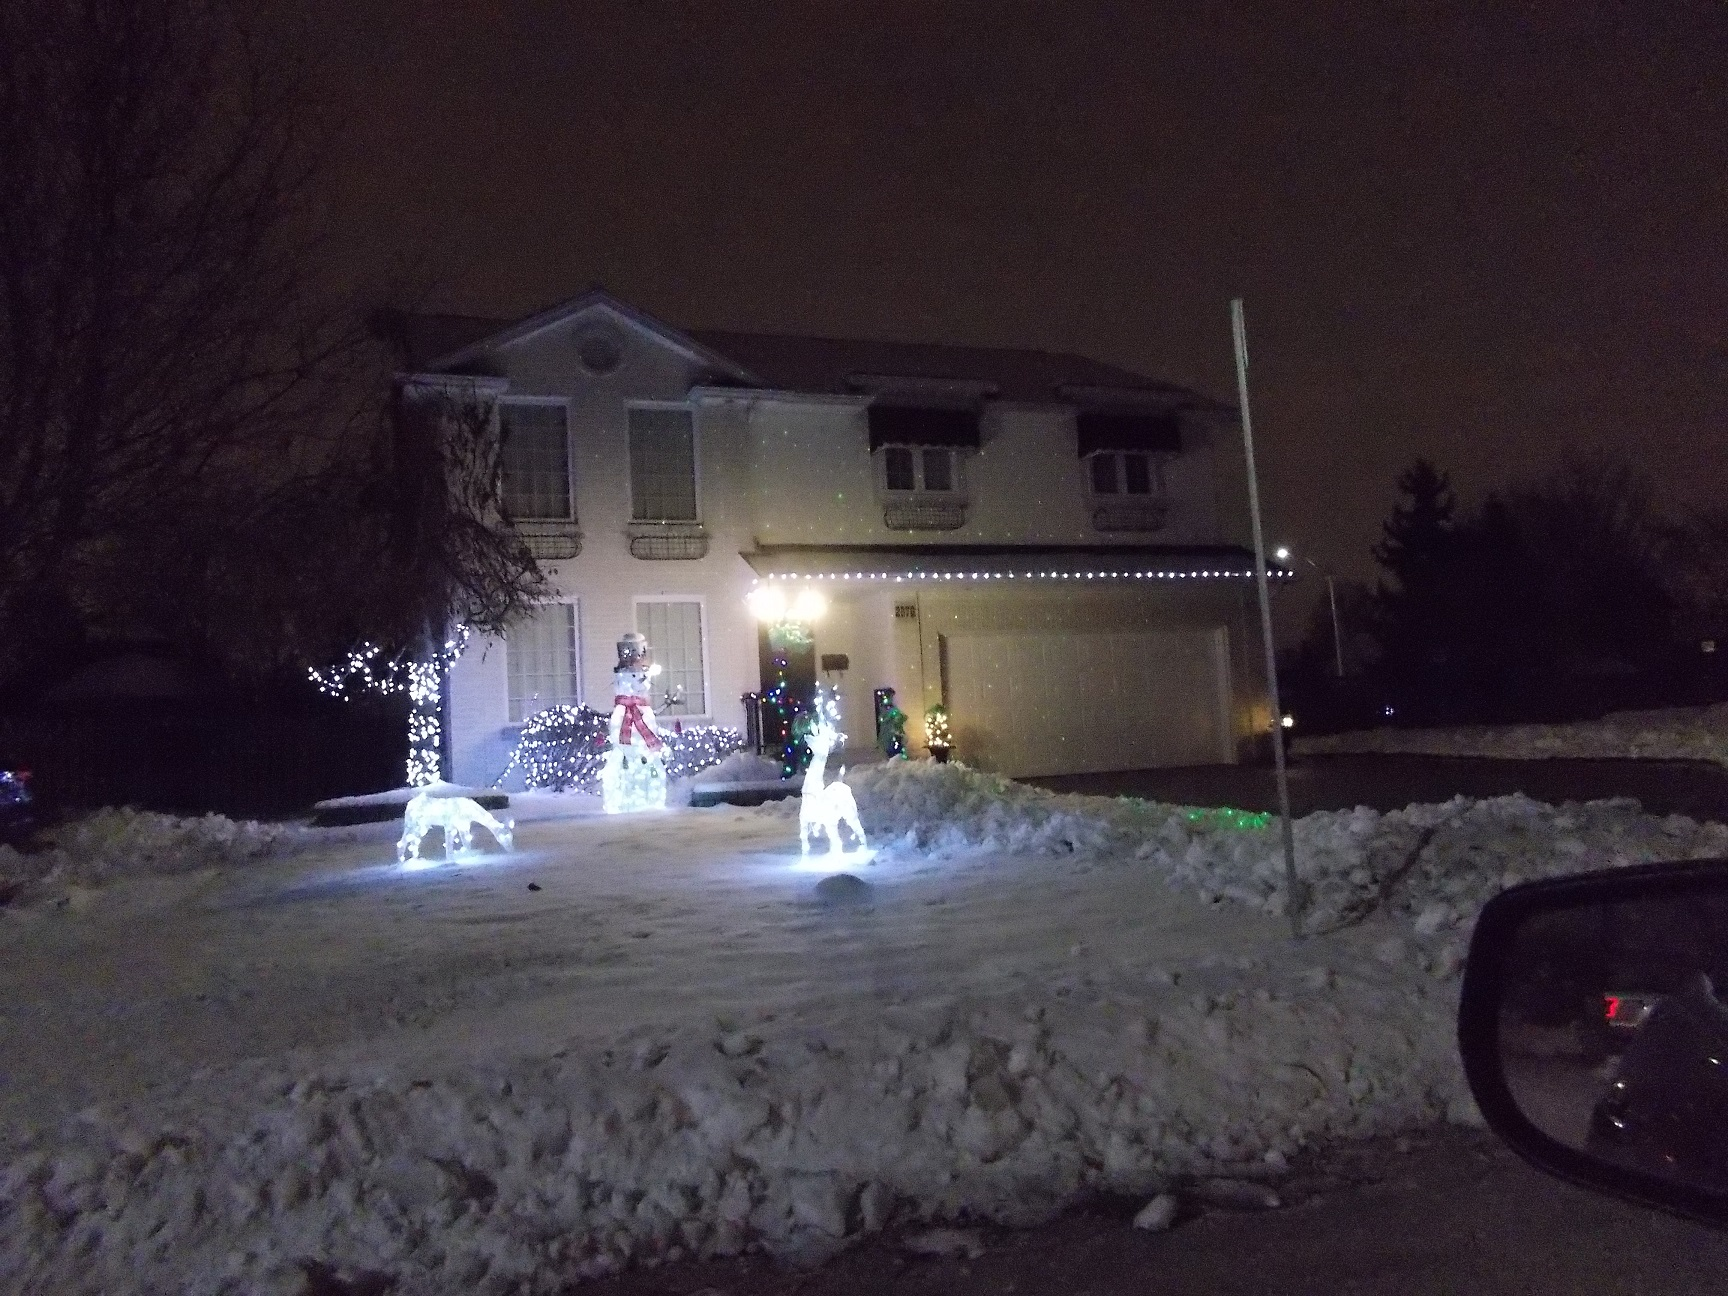 third place winner, 2670 Brideway Blvd lit up with christmas lights